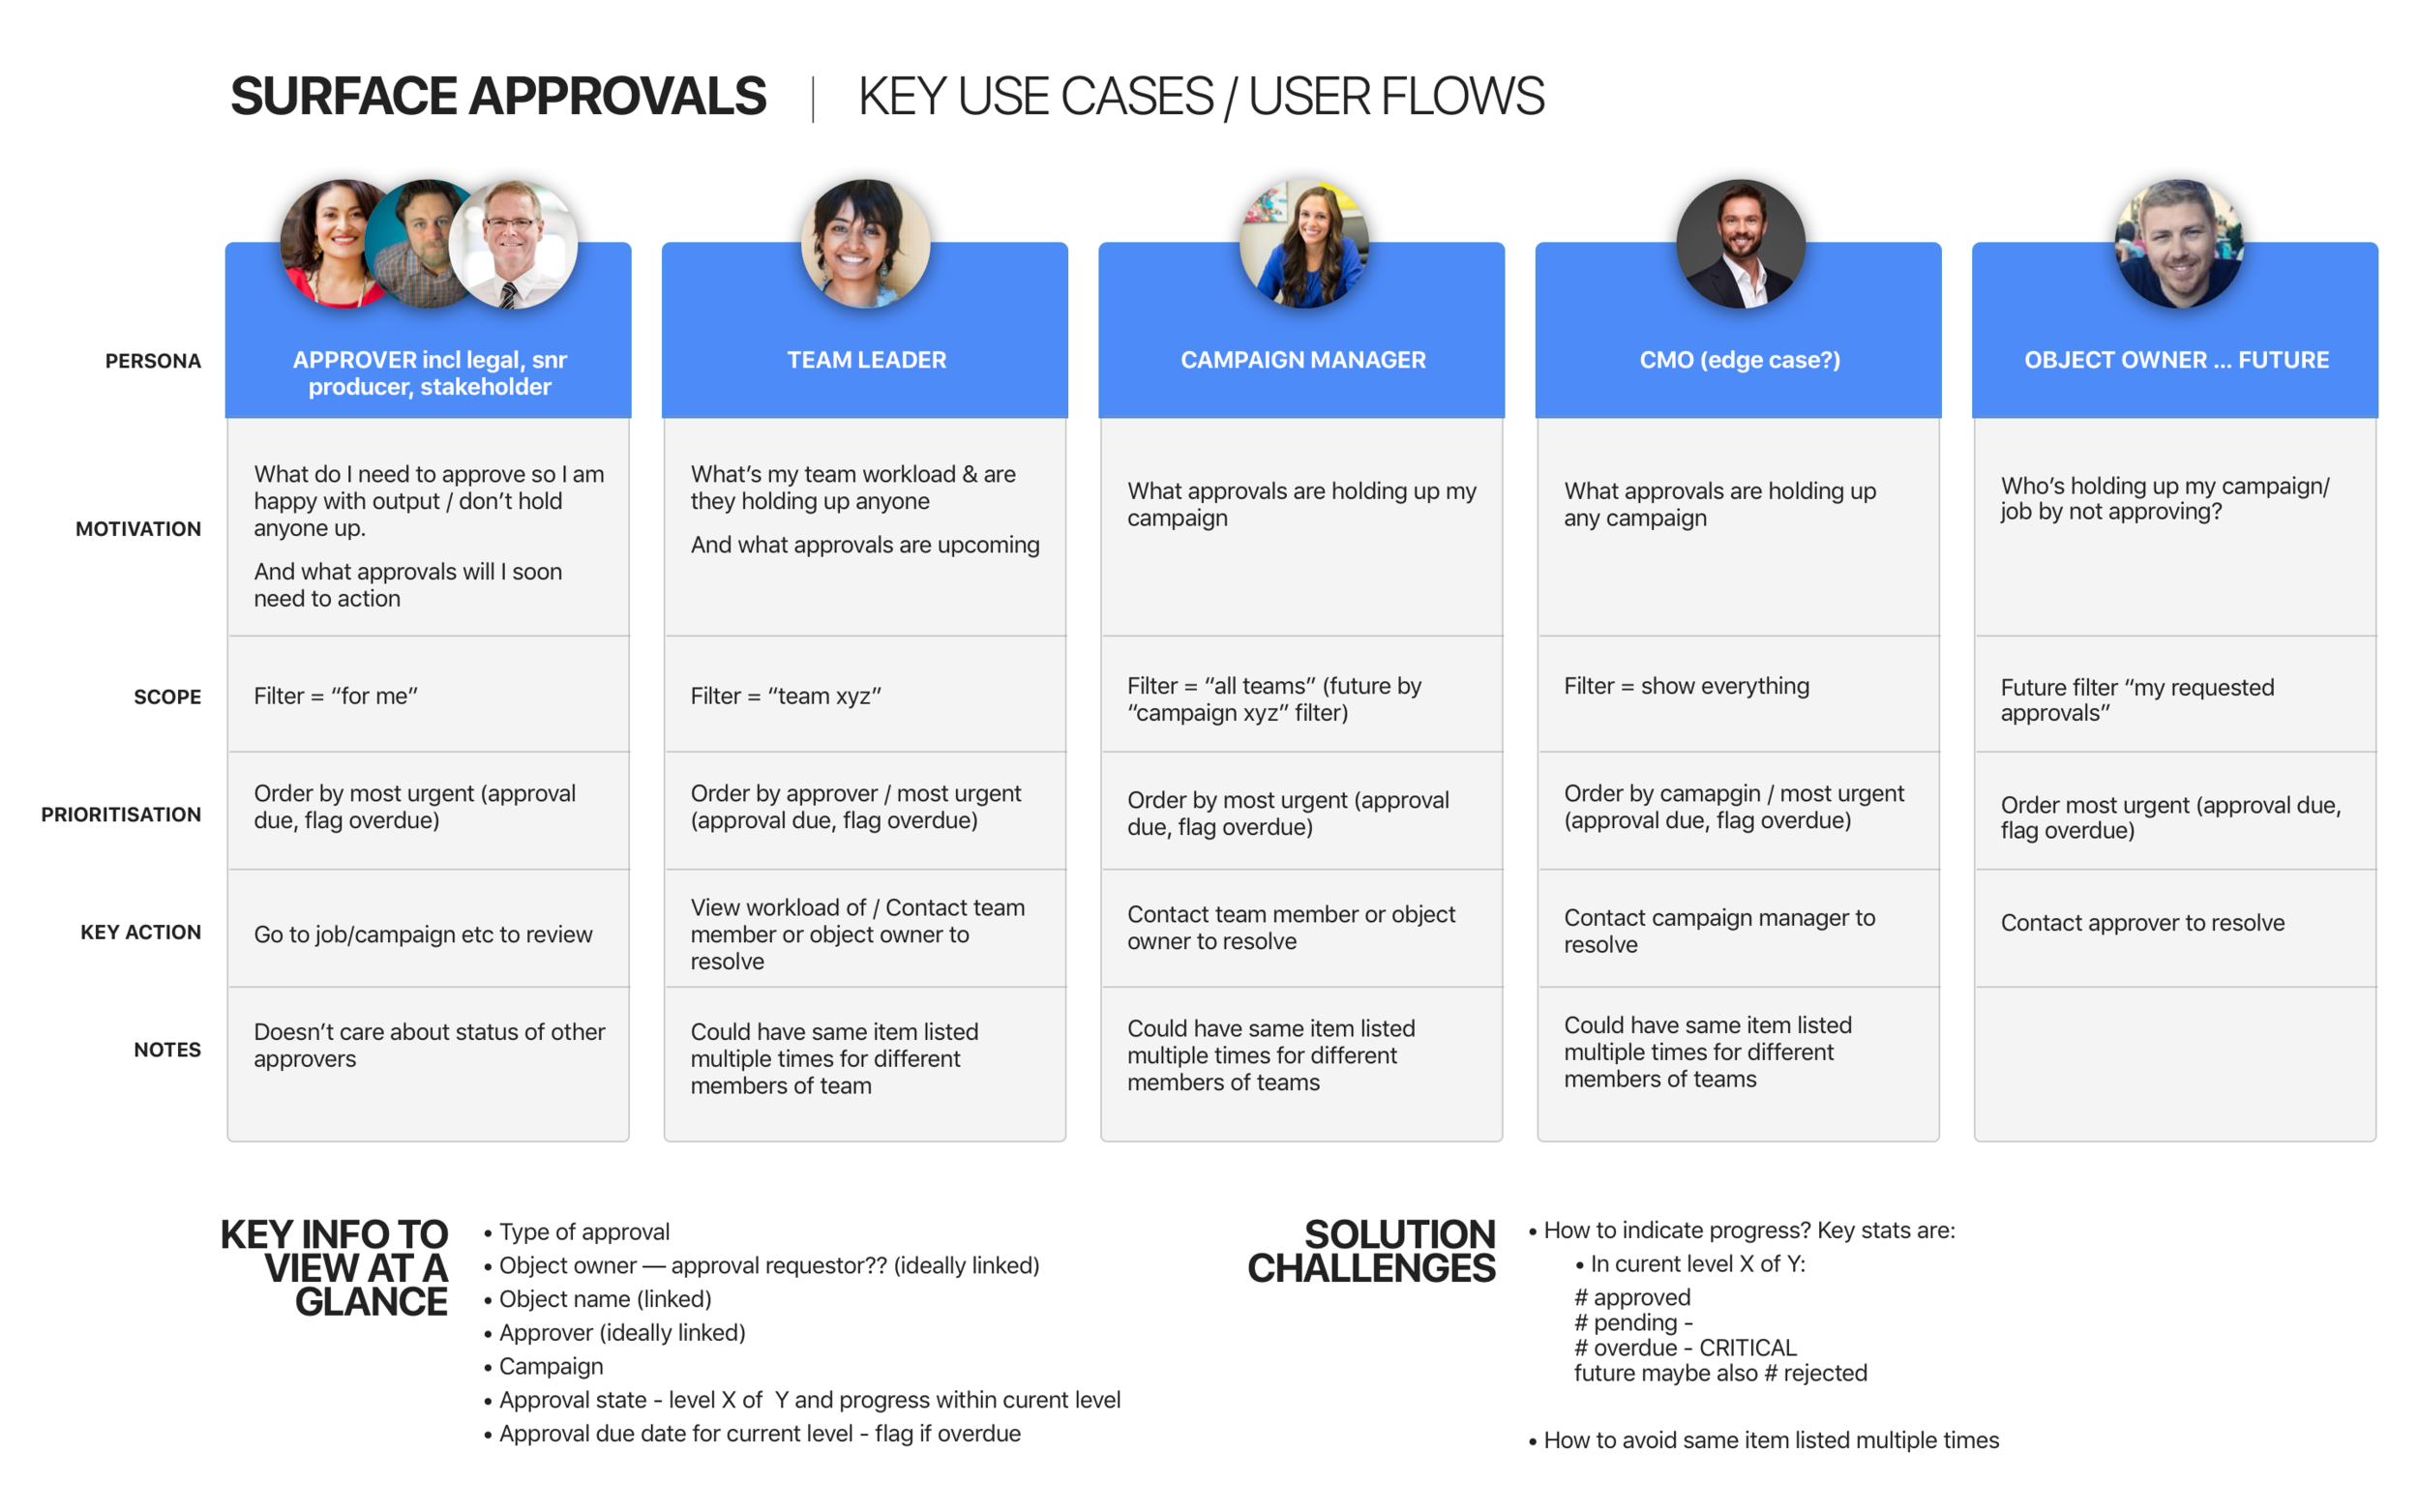 The first step was to document the primary use cases and flows for the main personas